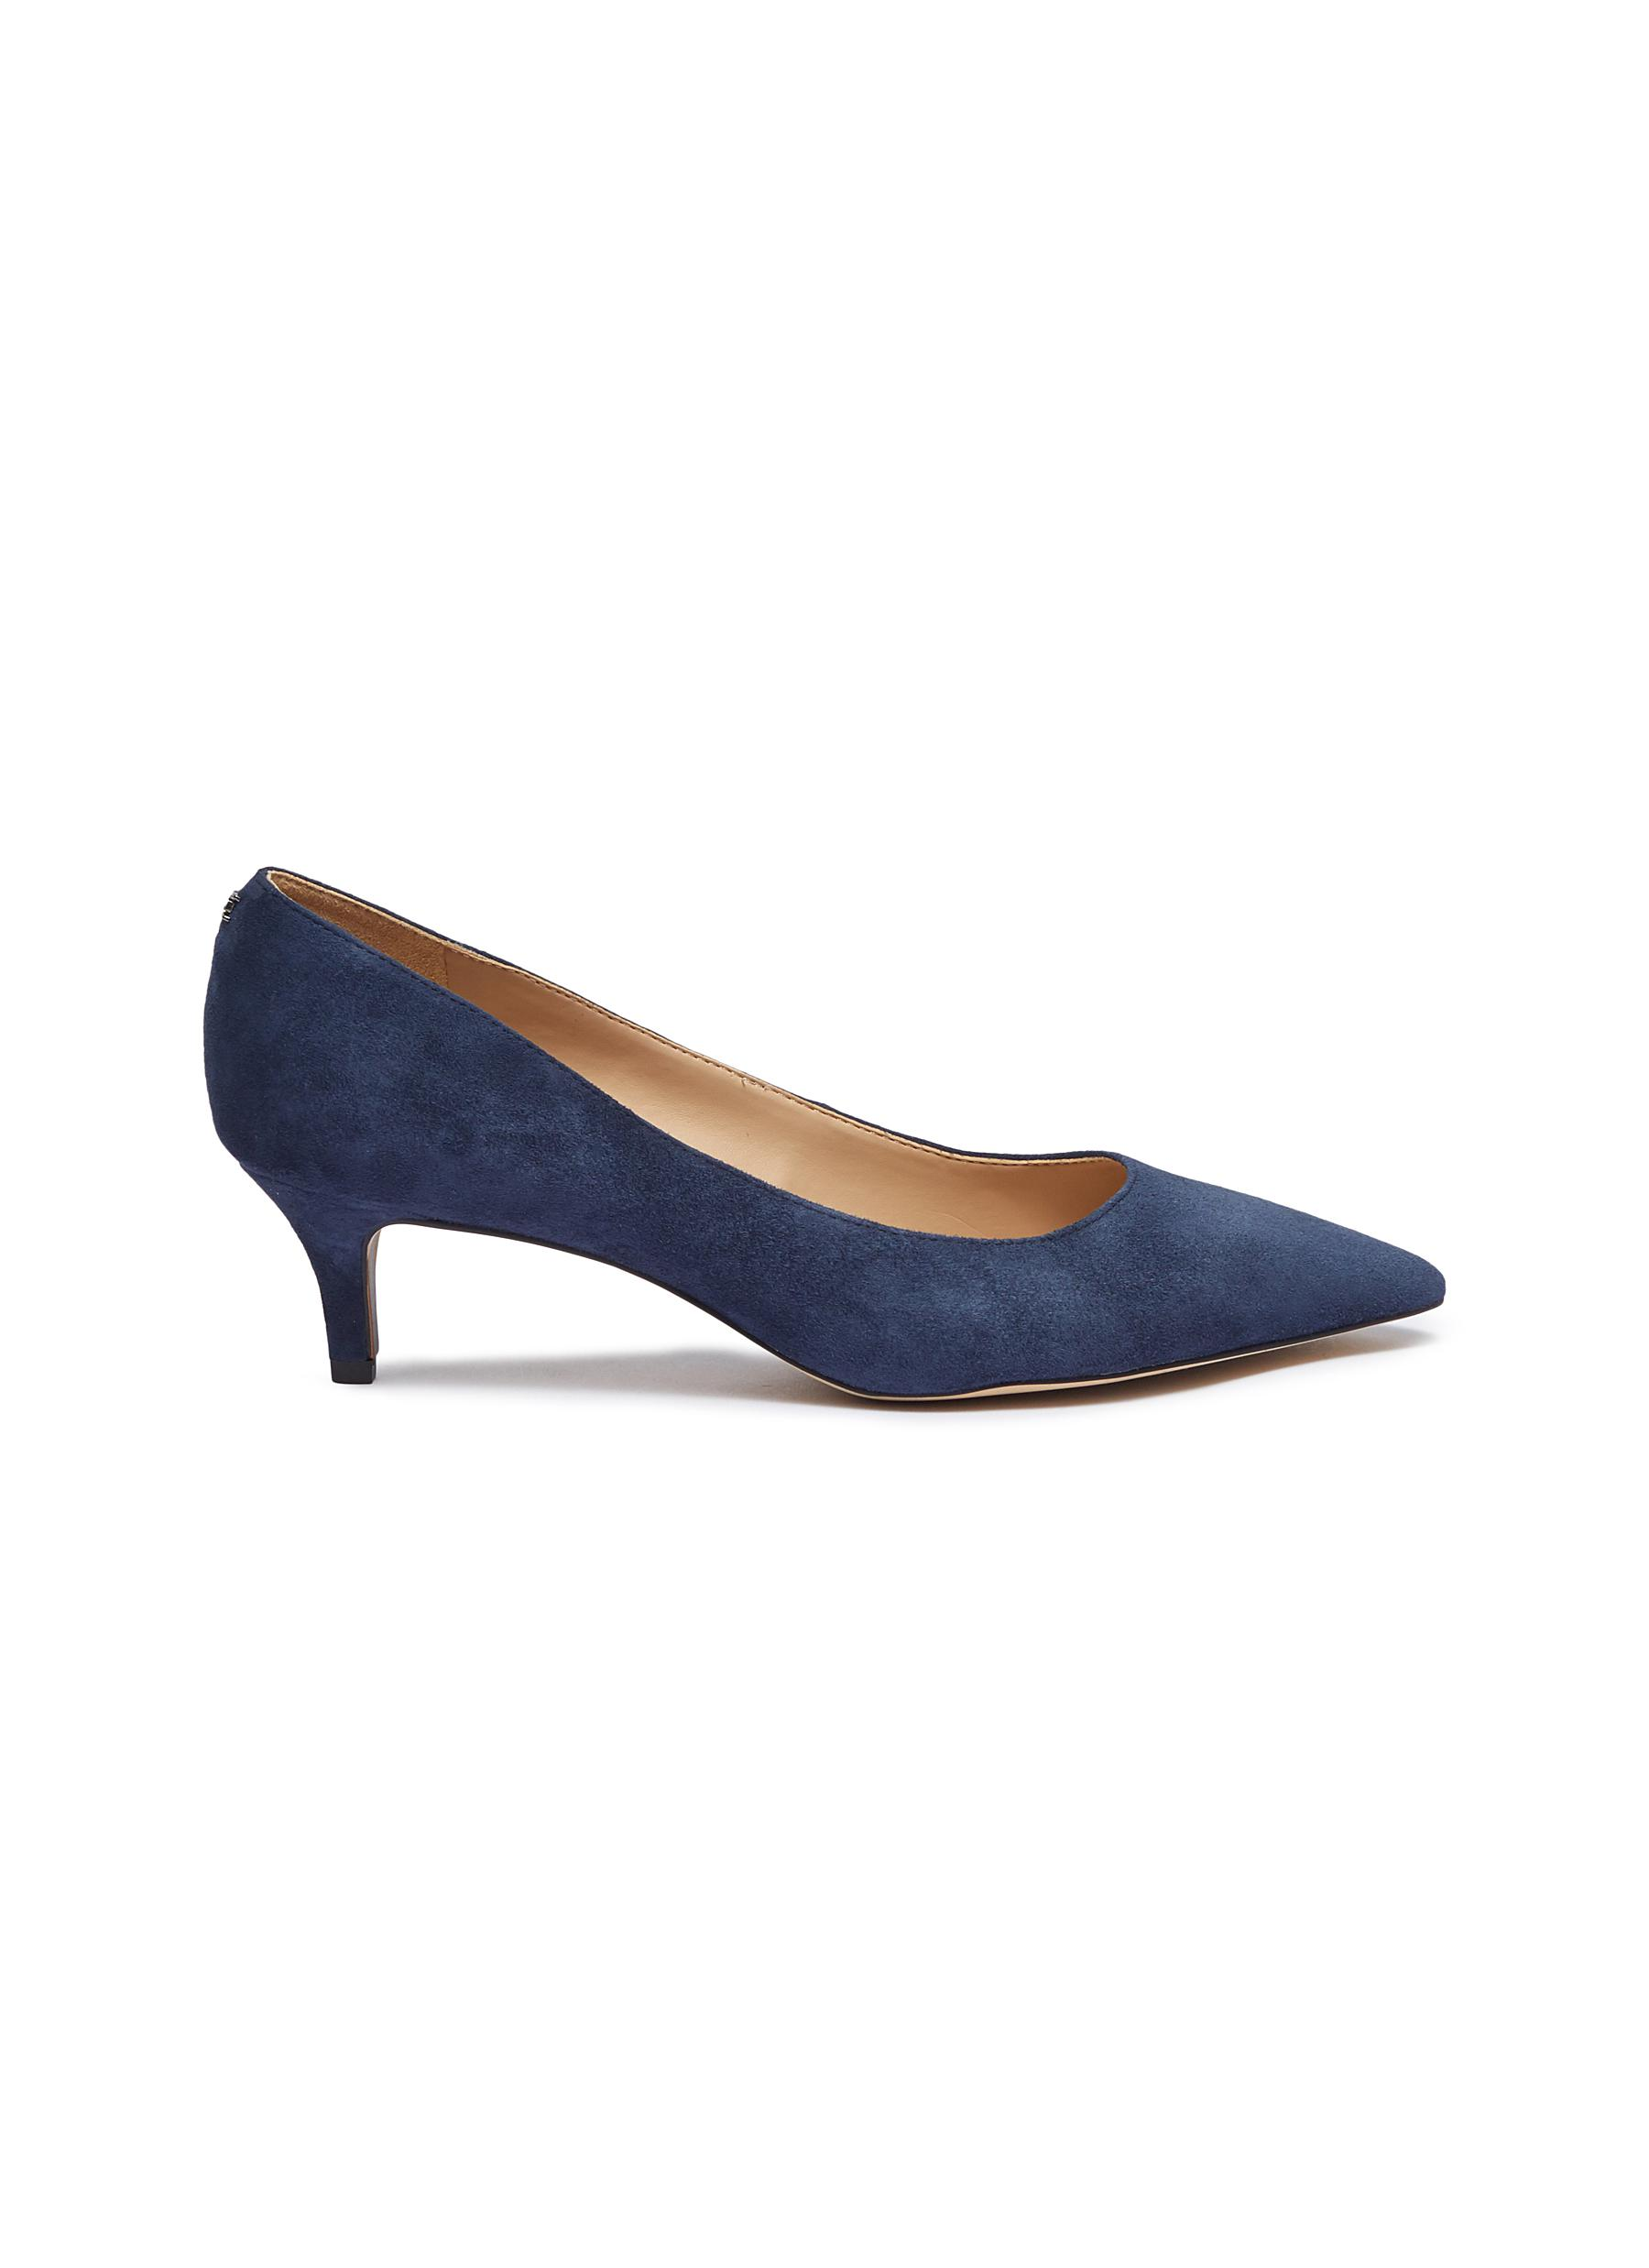 Dori suede pumps by Sam Edelman